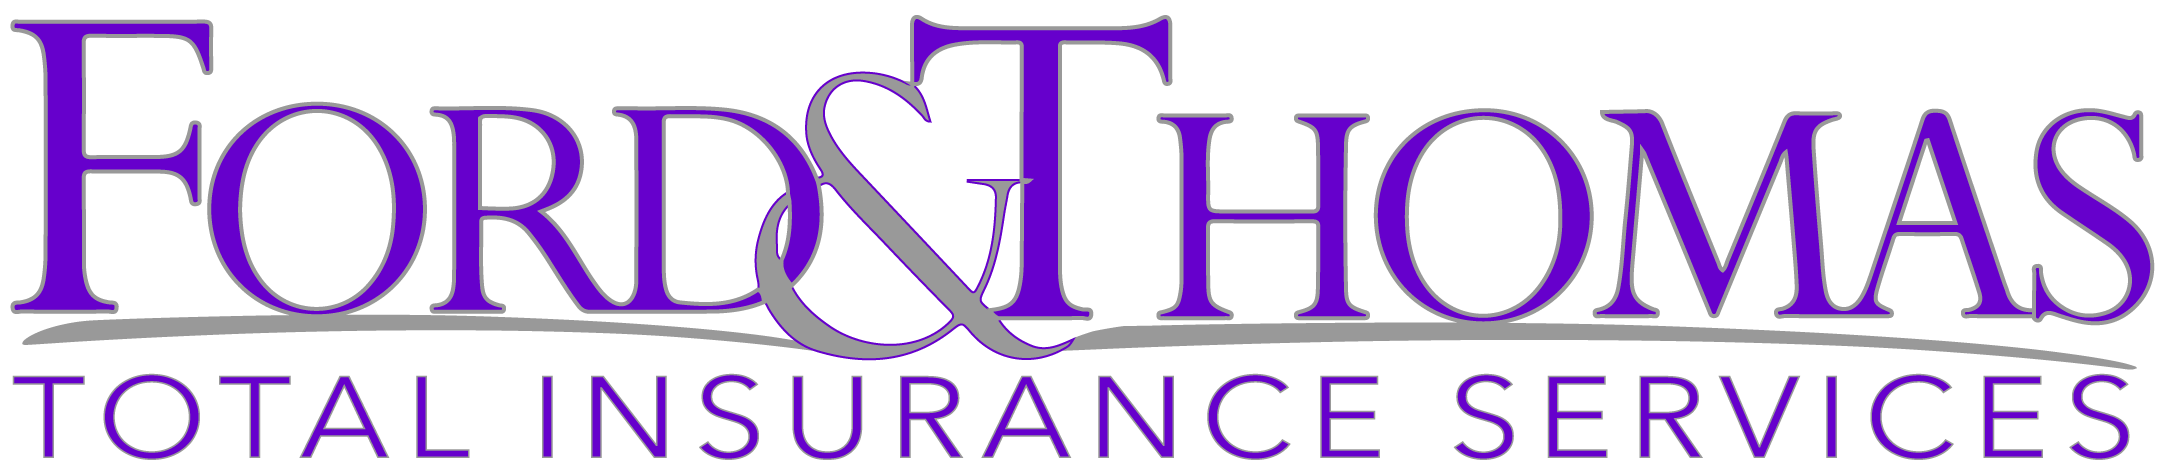 Ford & Thomas Insurance Agency